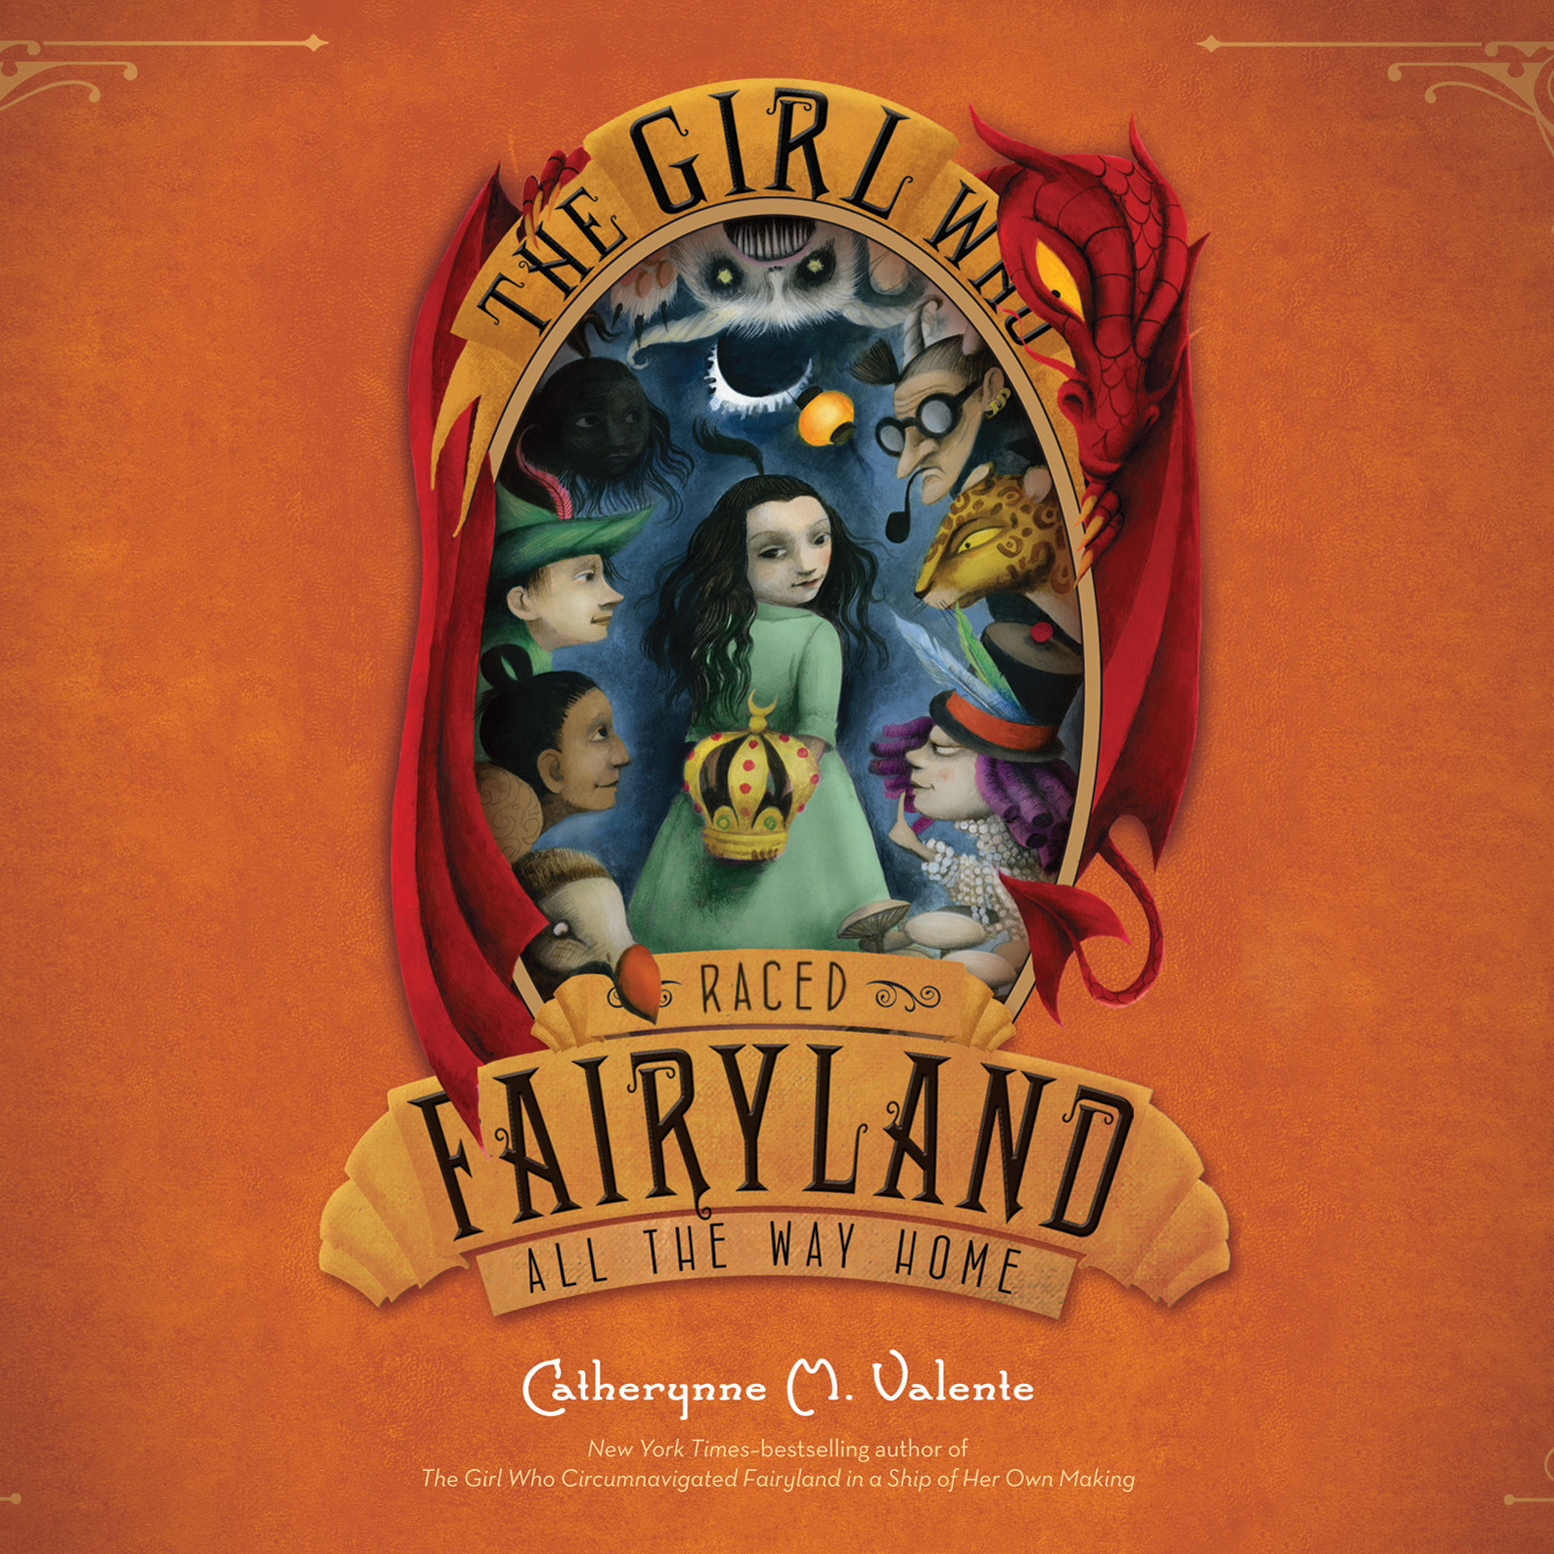 Printable The Girl Who Raced Fairyland All the Way Home Audiobook Cover Art